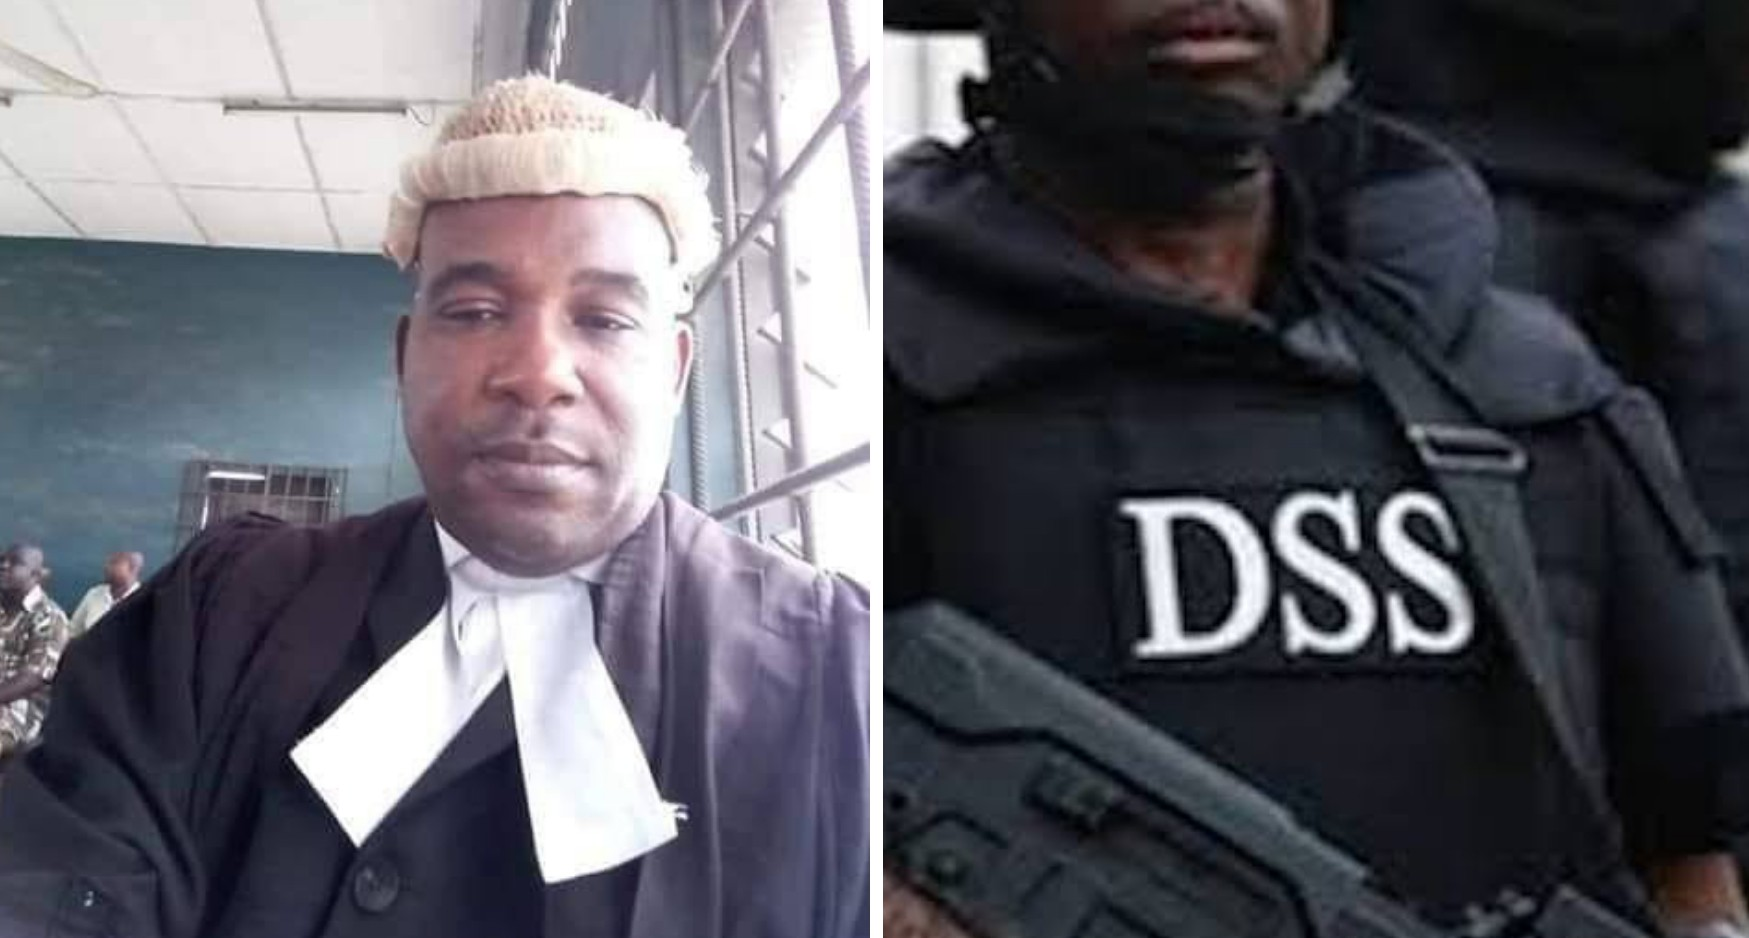 DSS releases Abia-based Lawyer after four months in unlawful detention